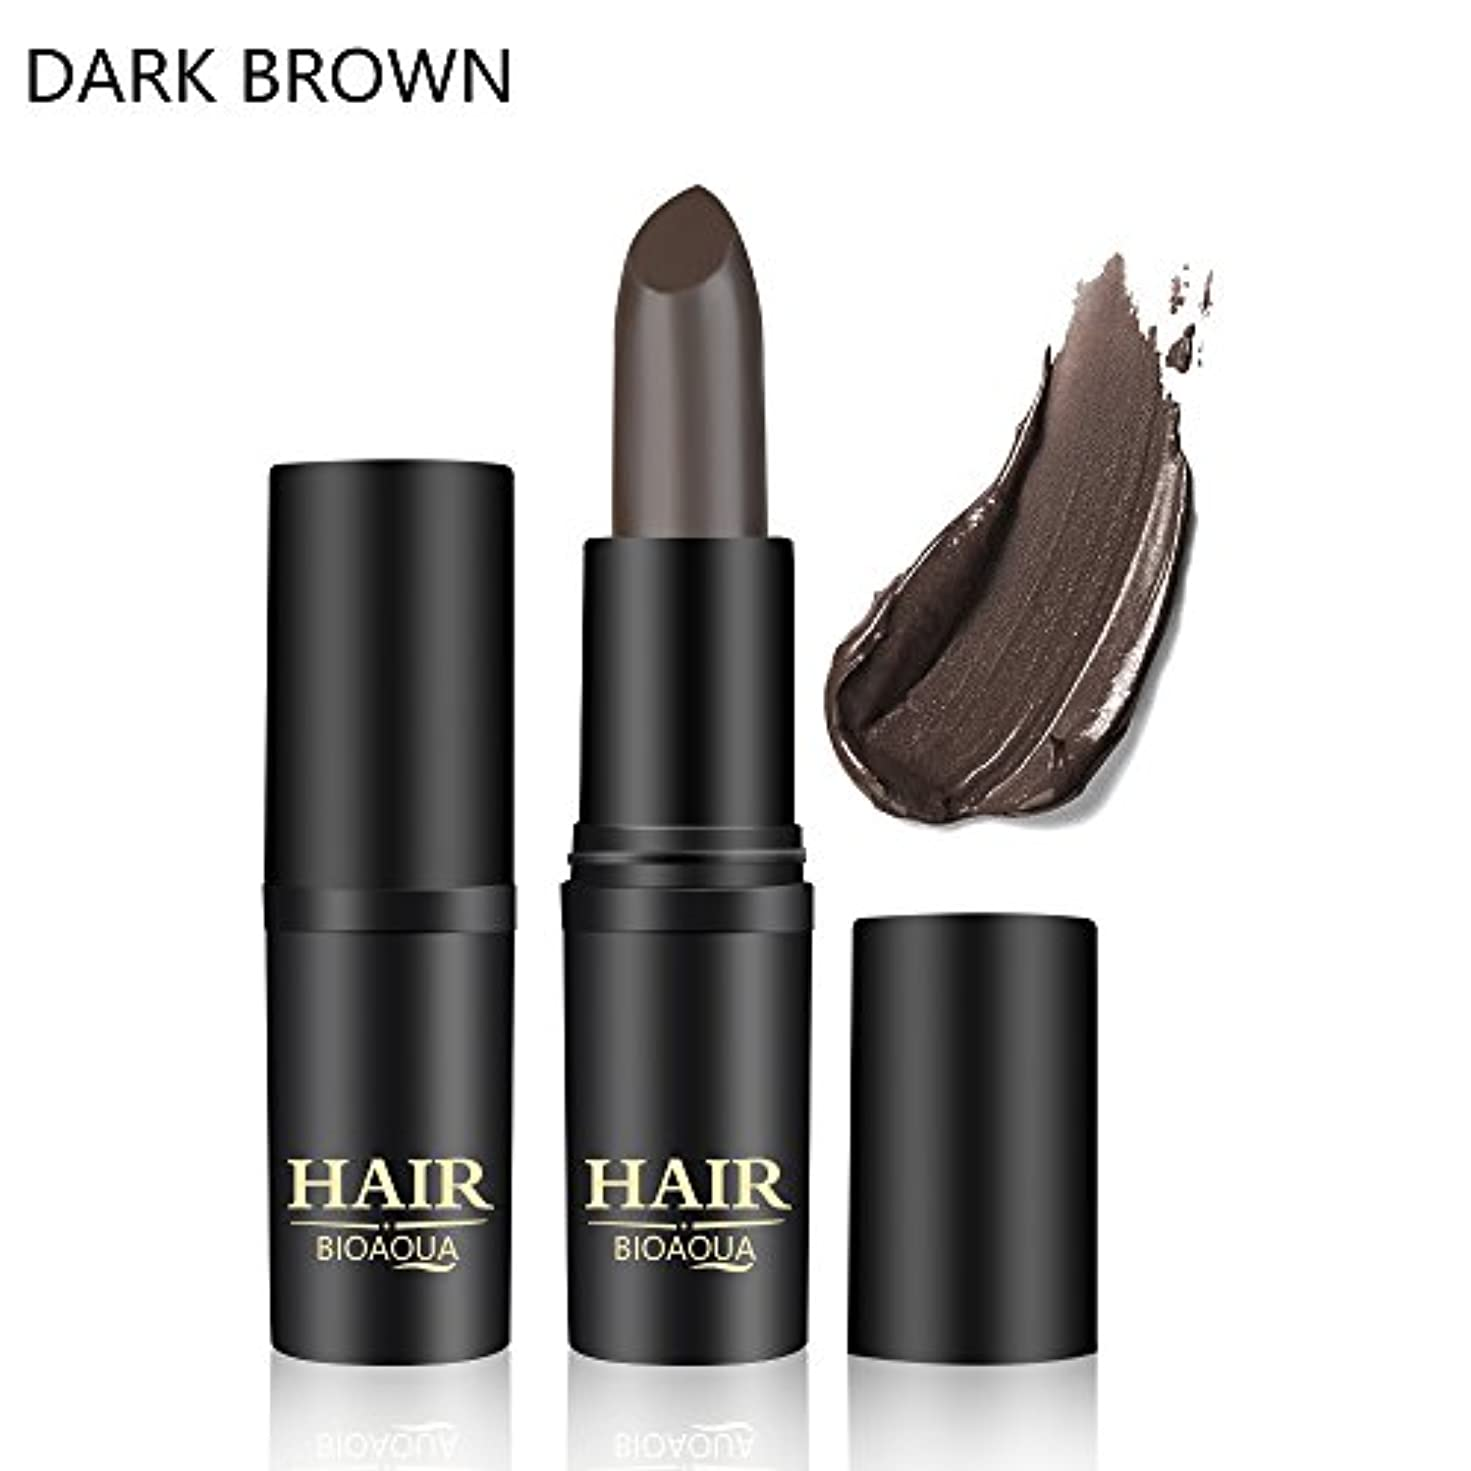 [BROWN] 1PC Temporary Hair Dye Cream Mild Fast One-off Hair Color Stick Pen Cover White Hair DIY Styling Makeup...